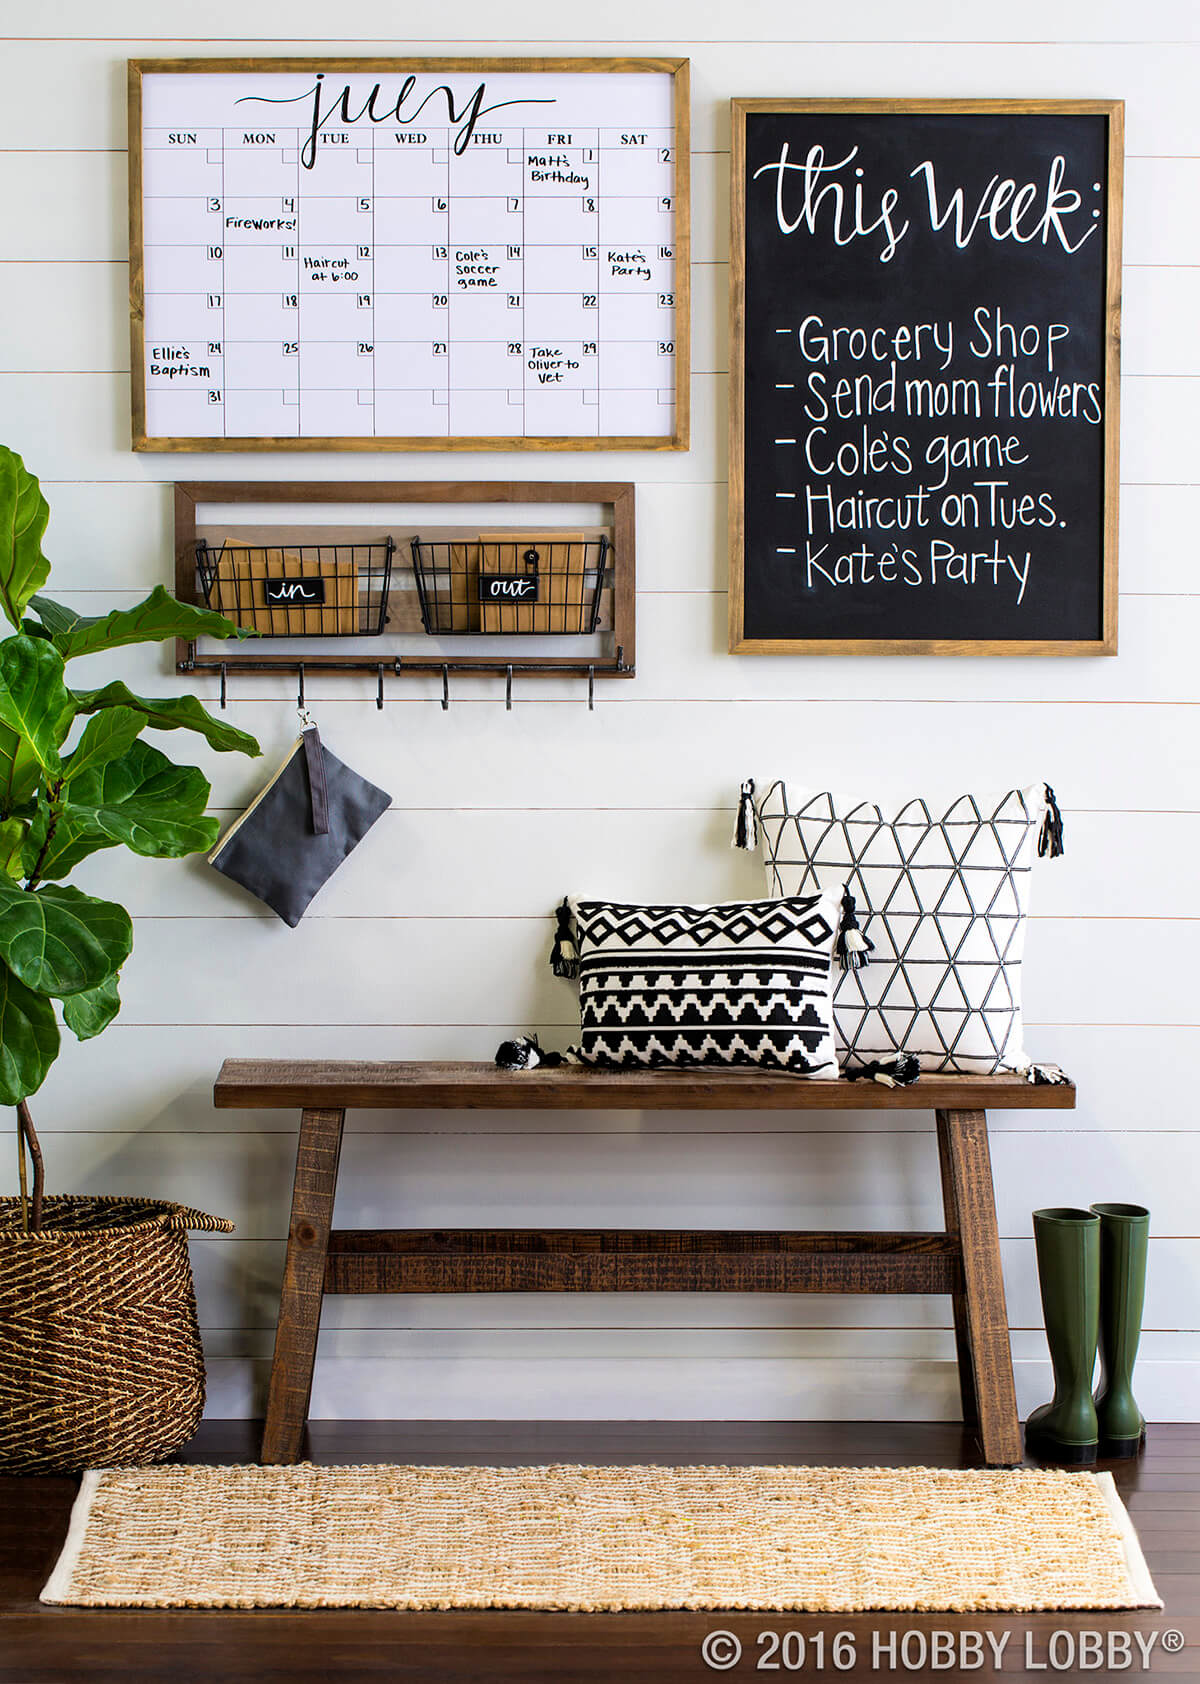 Love this farmhouse style command station, so cute and easy to put together! Get organized in style! #farmhouse #farmhousestyle #commandstation #diy #commandcenter